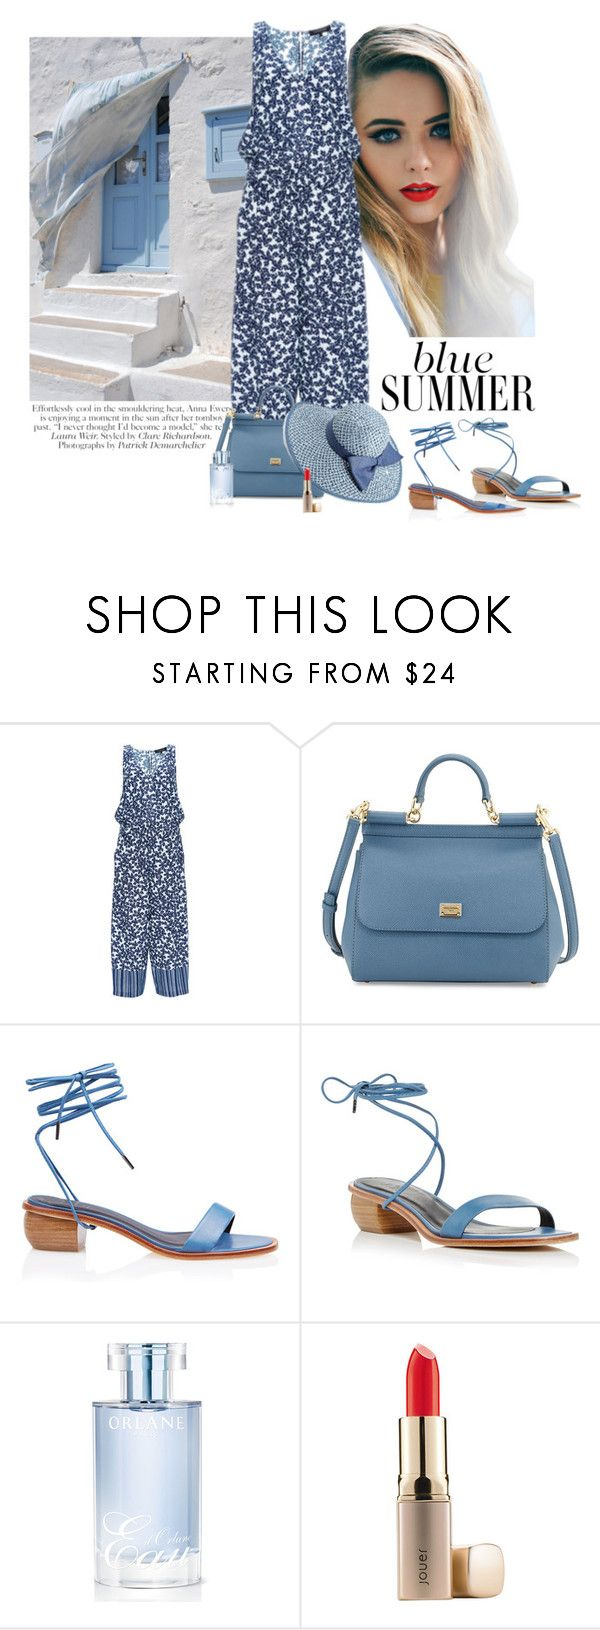 """""""Blue Summer"""" by katiethomas-2 ❤ liked on Polyvore featuring Thakoon, Dolce&Gabbana, Jessica Simpson, TIBI, Orlane, Jouer, women's clothing, women's fashion, women and female"""